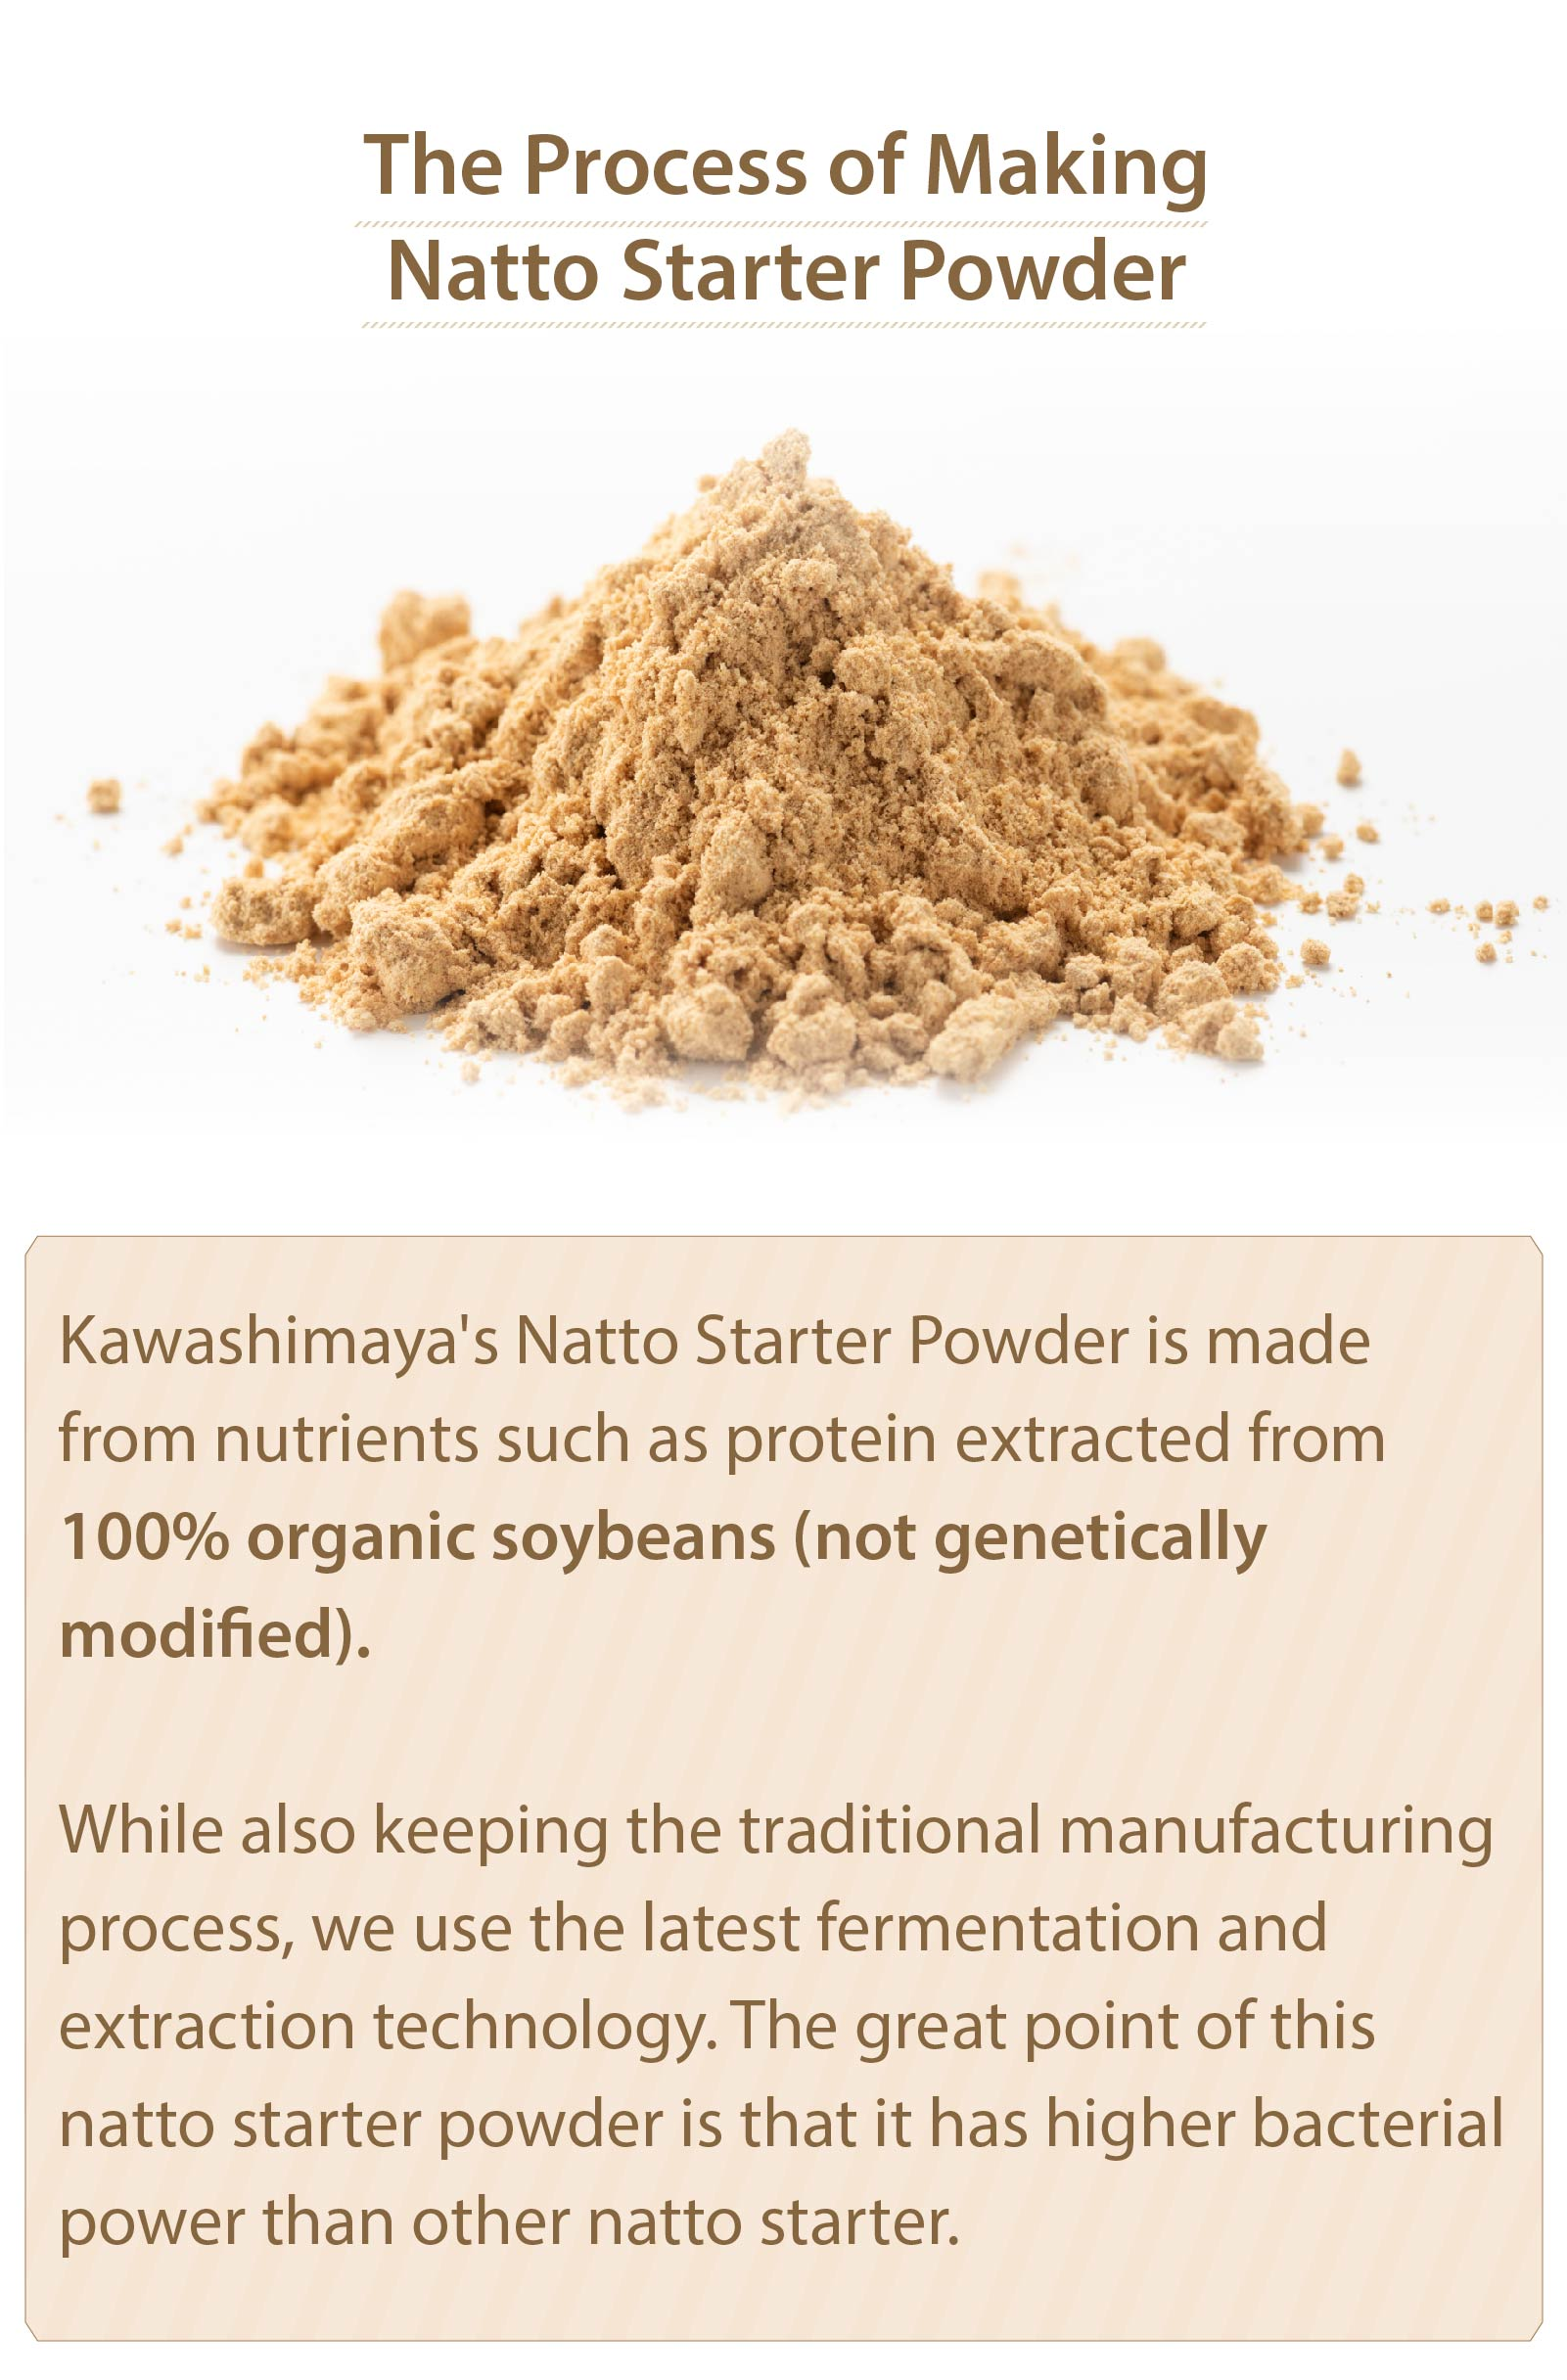 The Manufacture Process of Natto Starter Powder